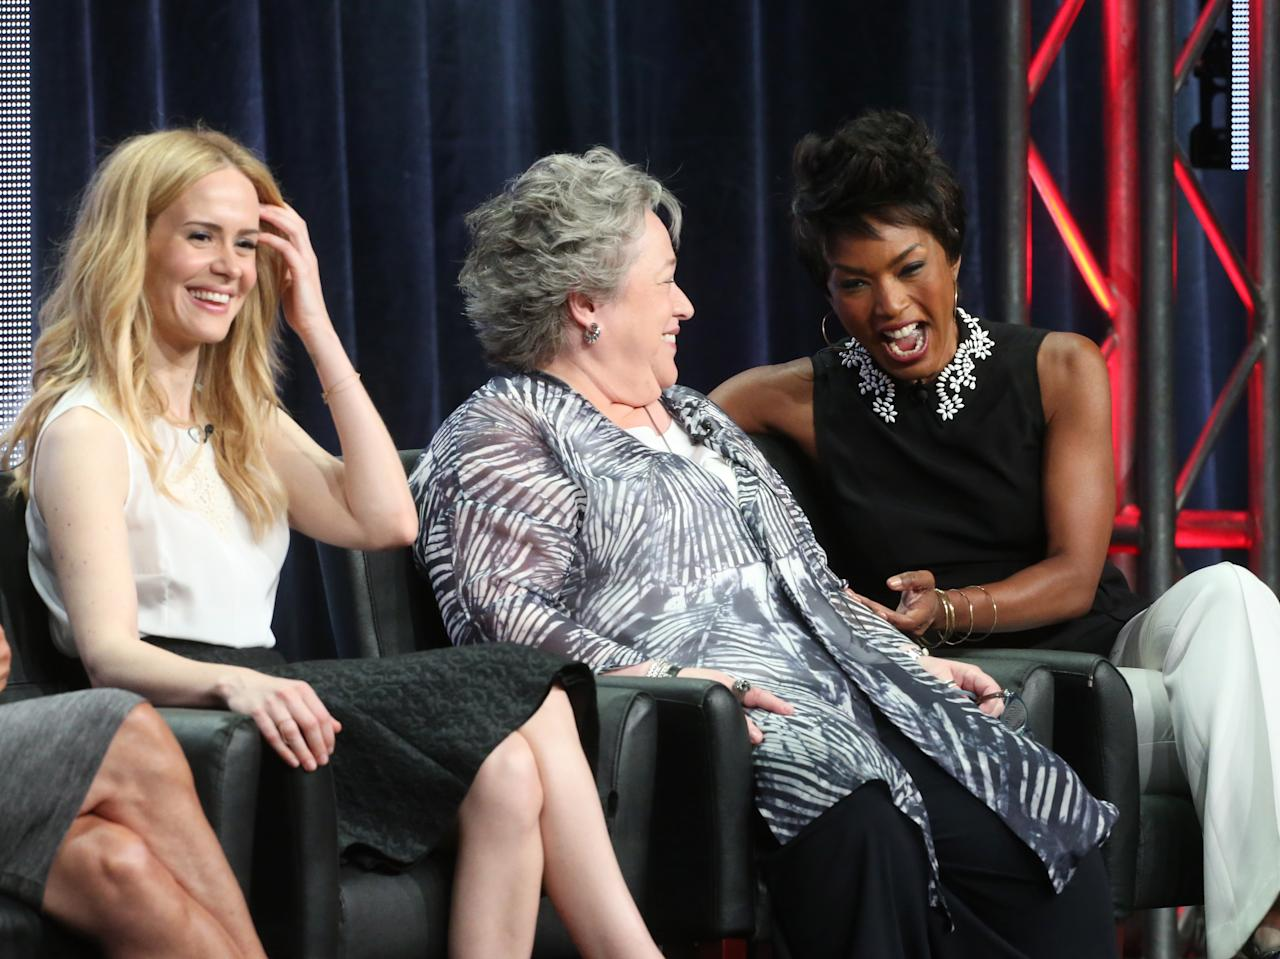 """BEVERLY HILLS, CA - AUGUST 02: (L-R) Actresses Sarah Paulson, Kathy Bates, and Angela Bassett speak onstage during the """"American Horror Story: Coven"""" panel discussion at the FX portion of the 2013 Summer Television Critics Association tour - Day 10 at The Beverly Hilton Hotel on August 2, 2013 in Beverly Hills, California. (Photo by Frederick M. Brown/Getty Images)"""